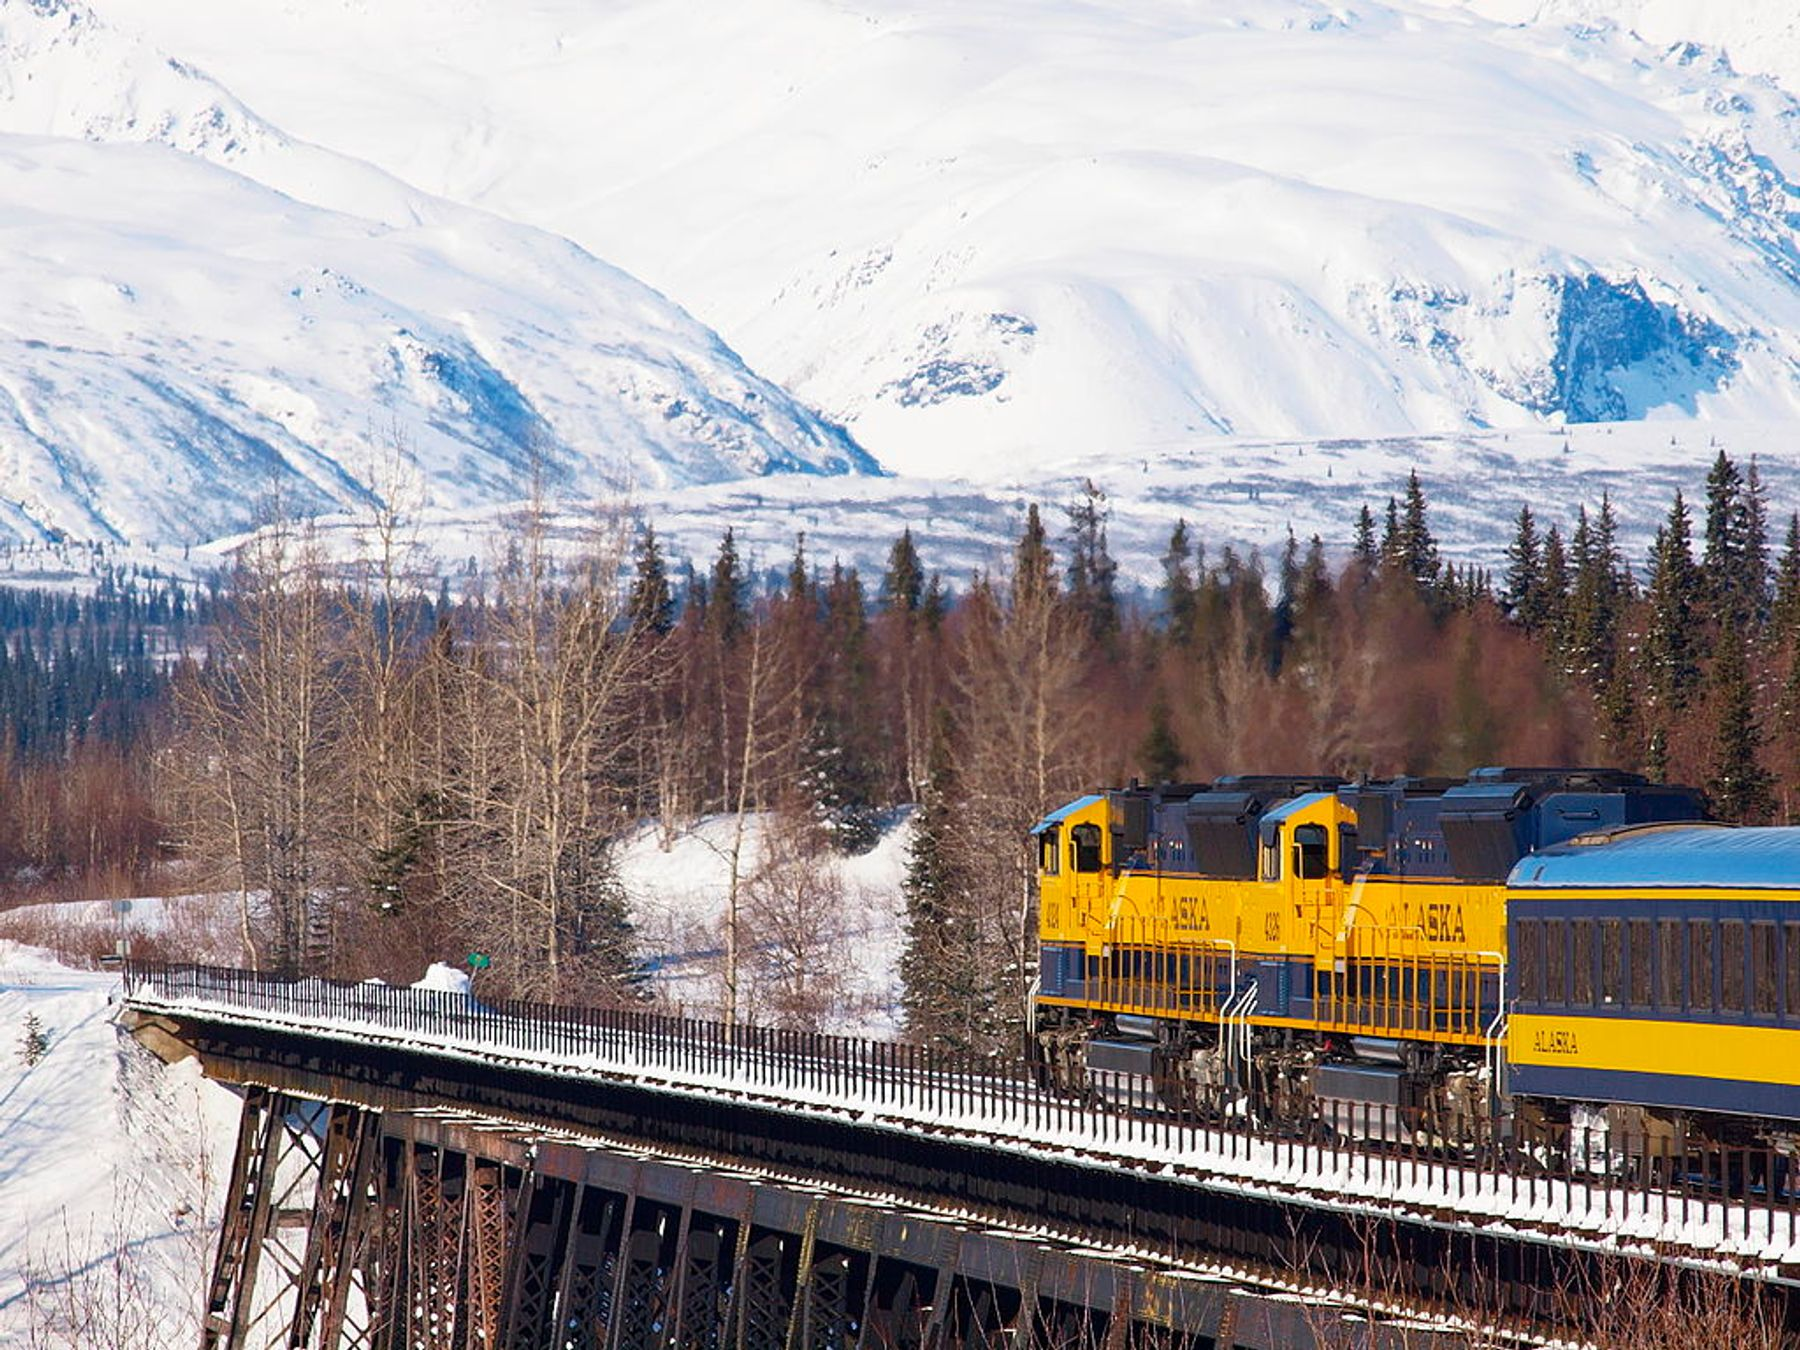 train going through snow covered mountains